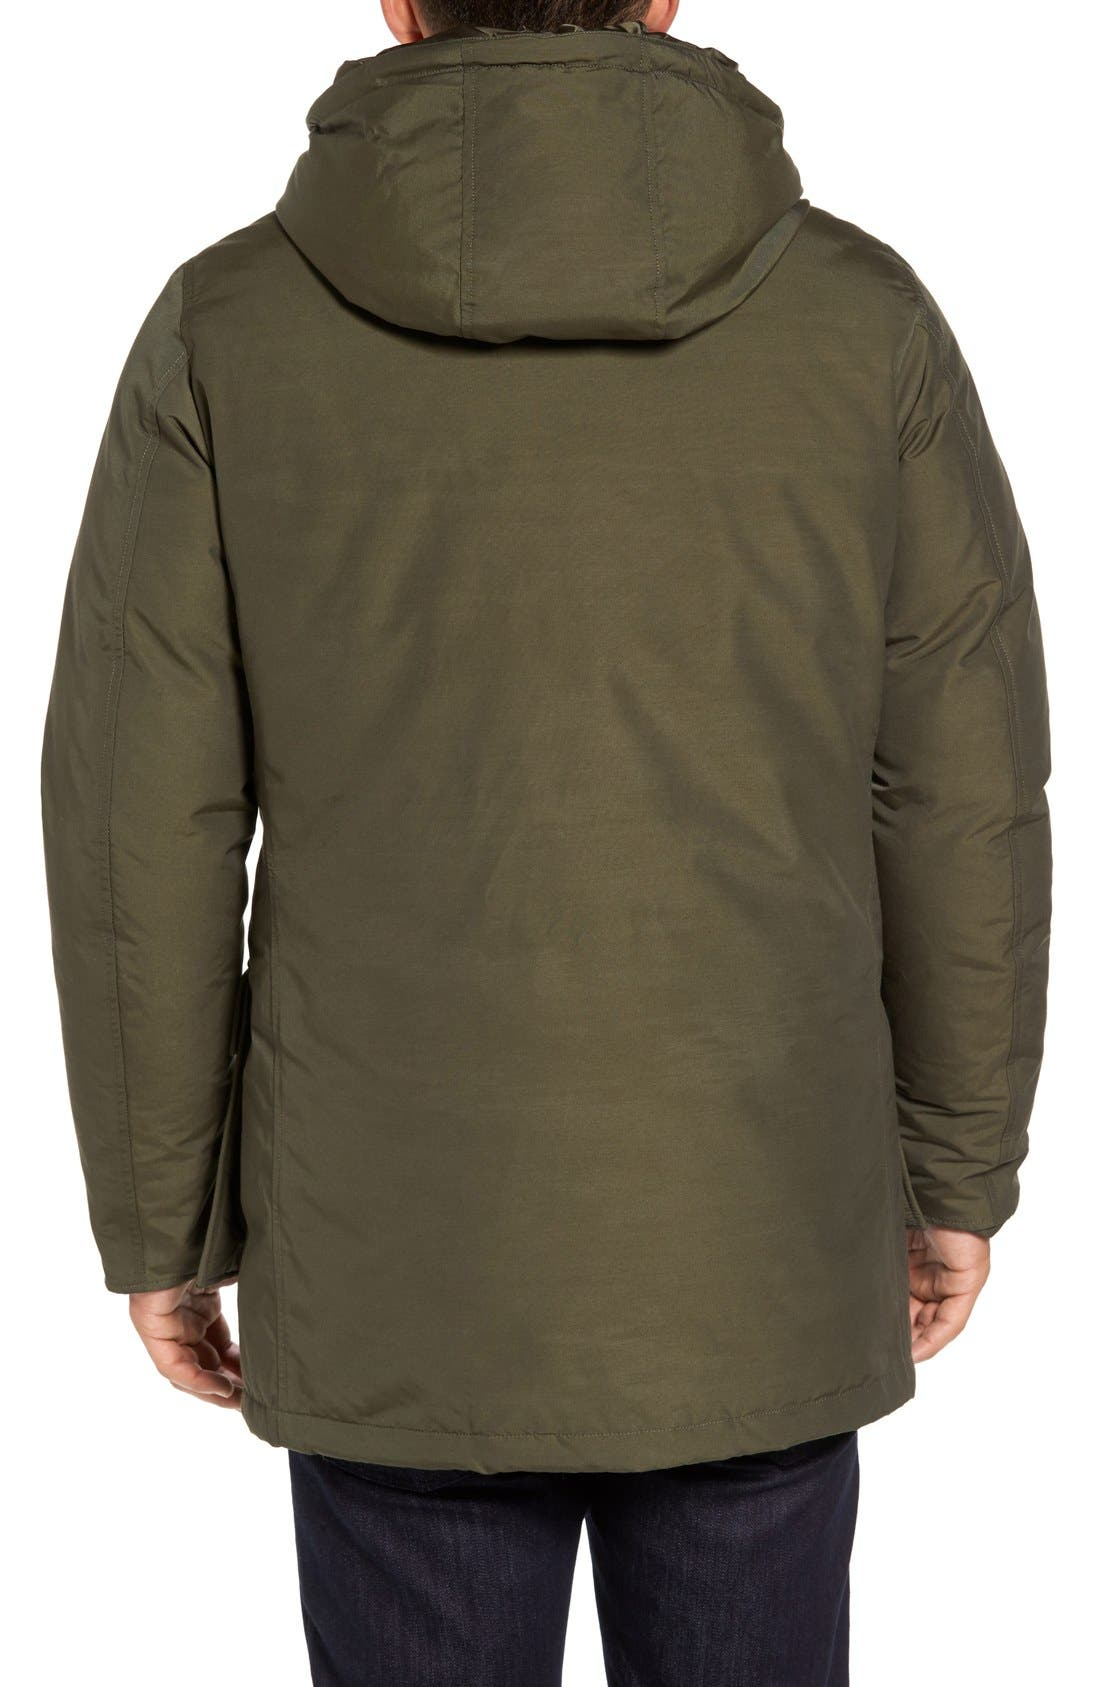 John Rich Down Arctic Parka,                             Alternate thumbnail 2, color,                             Dark Green